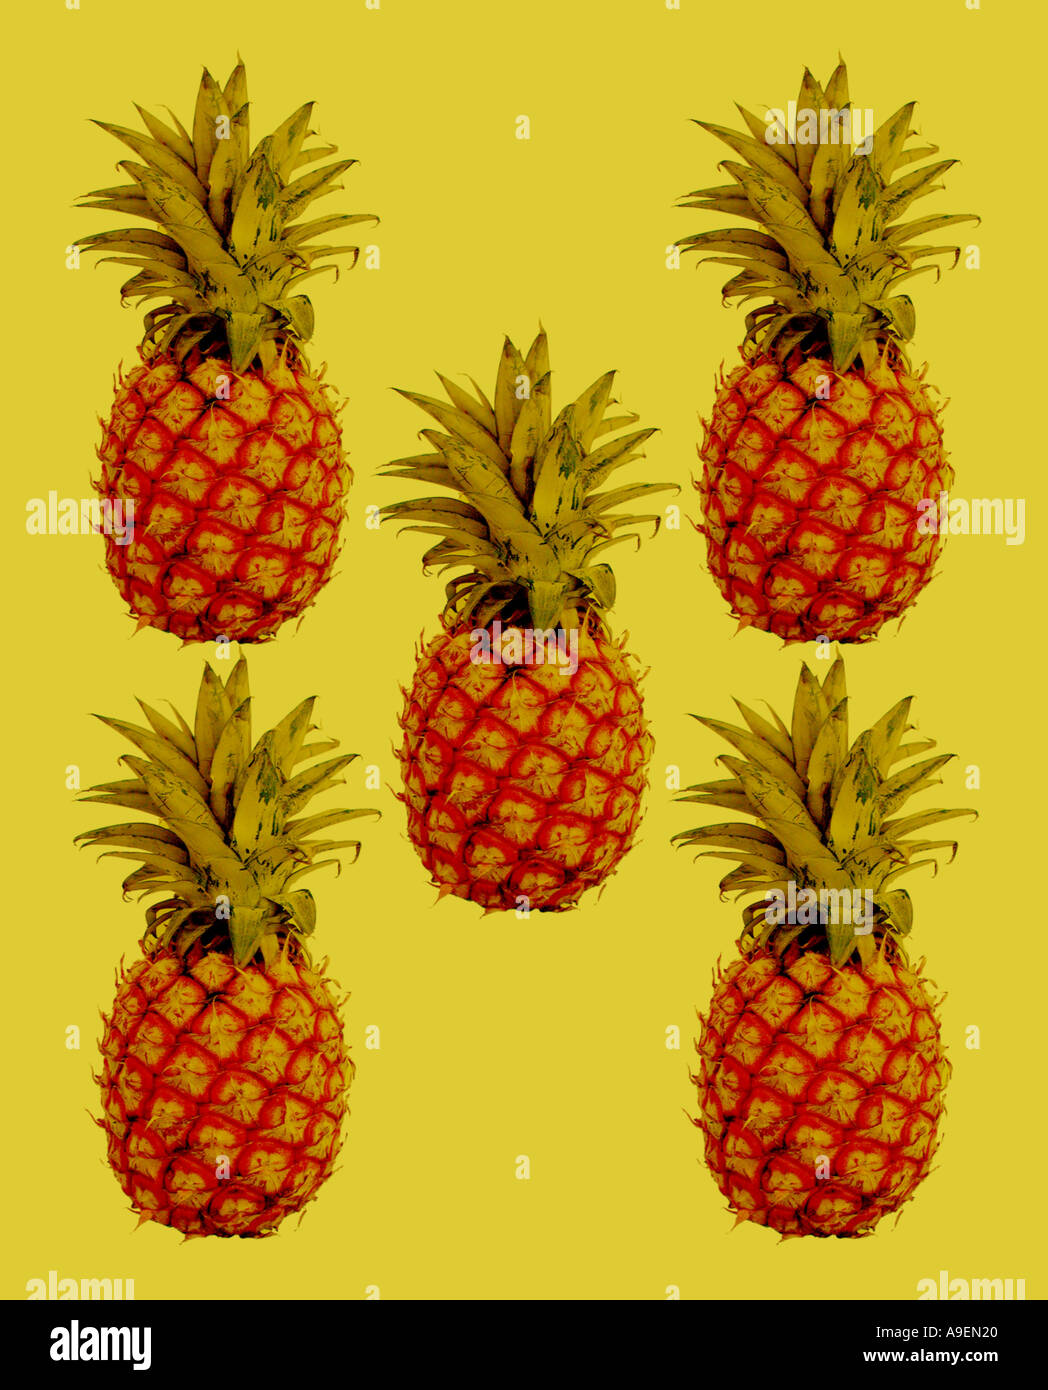 Nom commun Nom latin d'Ananas Ananas comosus Photo Stock